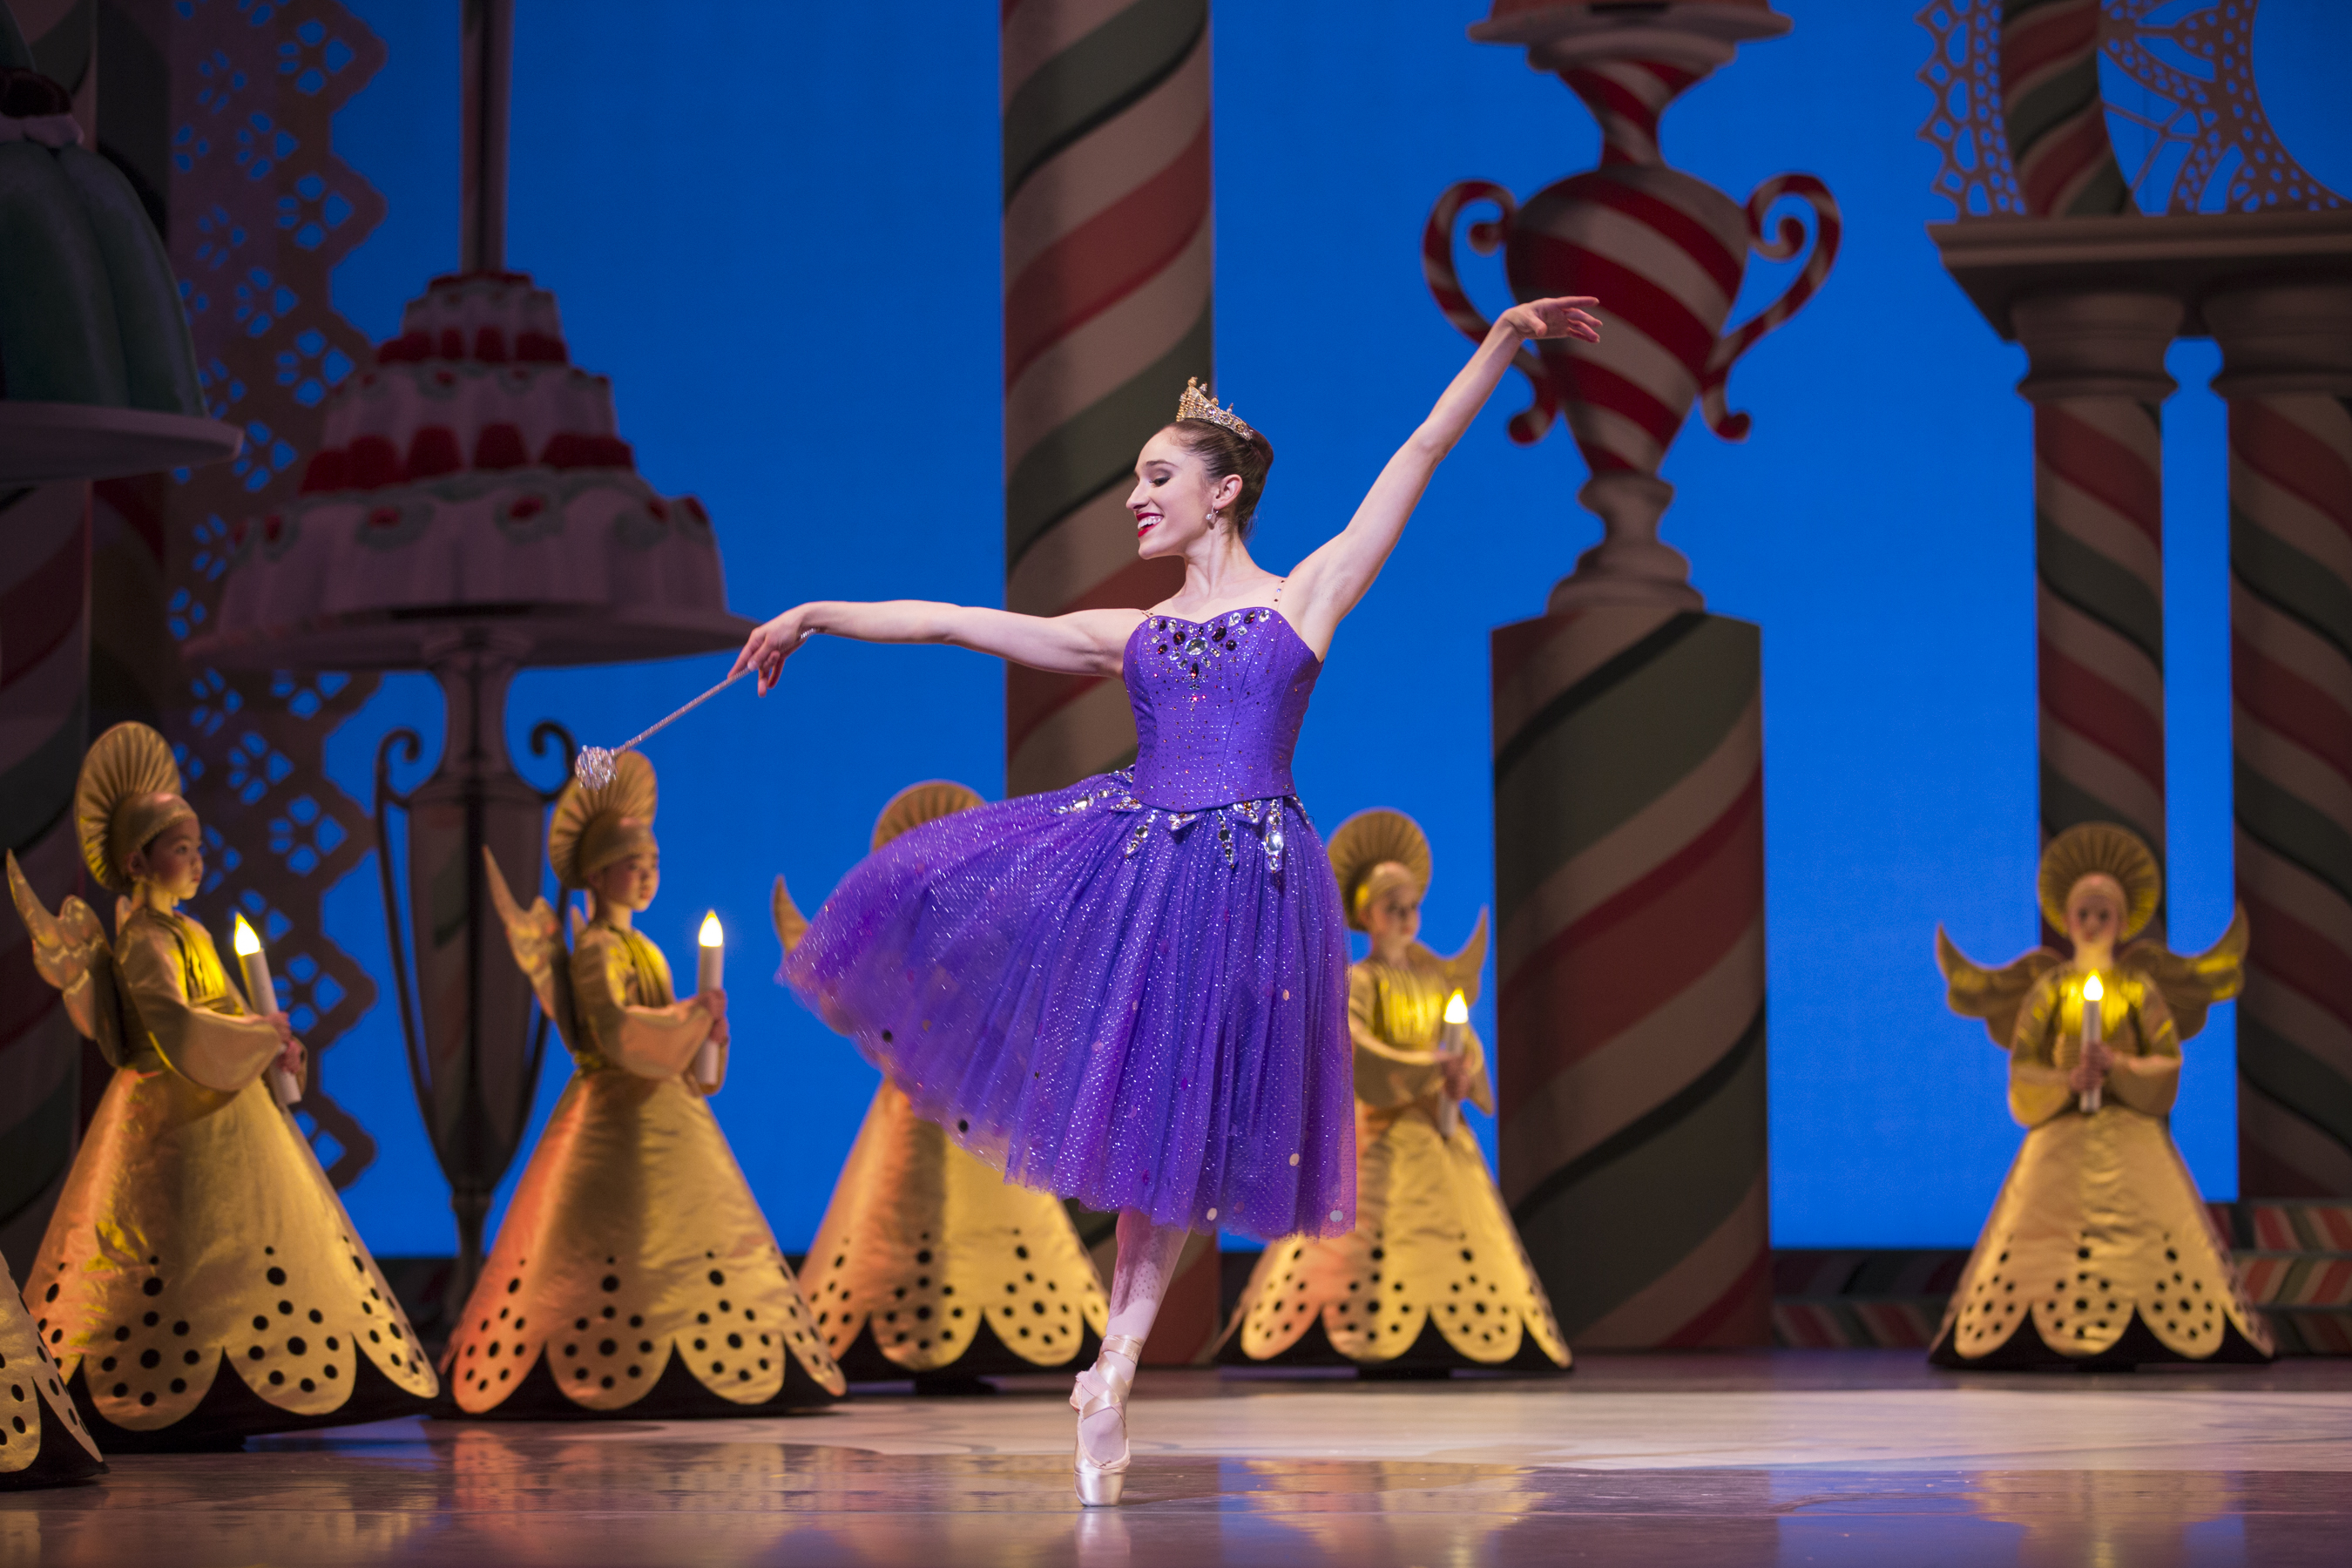 Pacific Northwest Ballet soloist Leta Biasucci as the Sugar Plum Fairy, with PNB School students in George Balanchine's The Nutcracker®, choreographed by George Balanchine © The George Balanchine Trust. PNB's production features sets and costumes designed by children's author and illustrator Ian Falconer (Olivia the Pig) and runs November 25 – December 28, 2016. Photo © Angela Sterling.